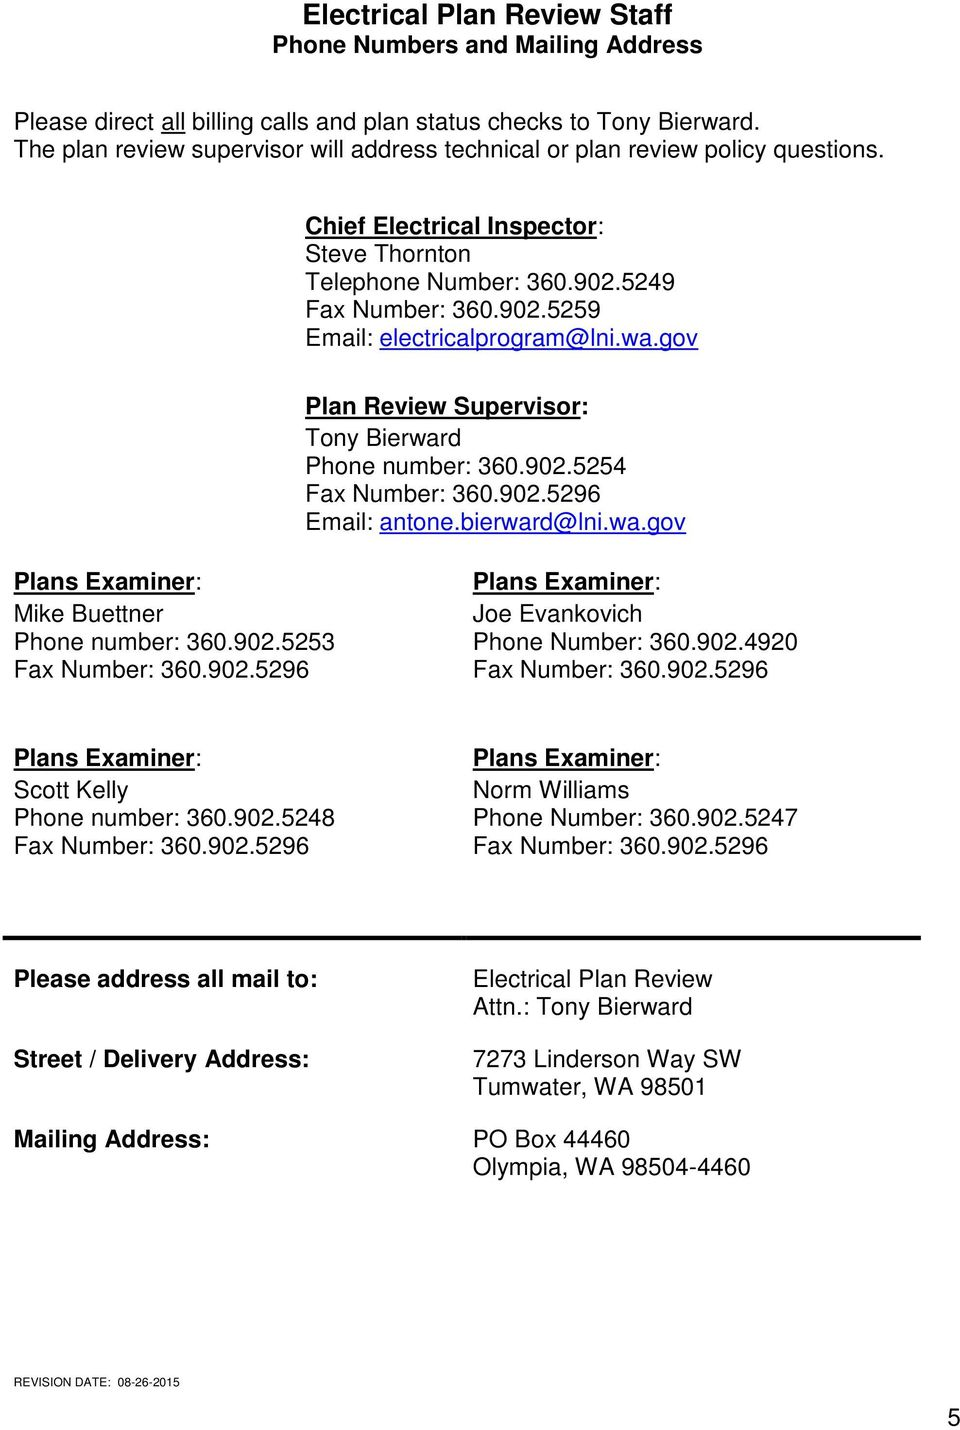 electrical plan review submittal guide pdf Spill Containment Plans wa gov plan review supervisor tony bierward phone number 360 902 5254 fax